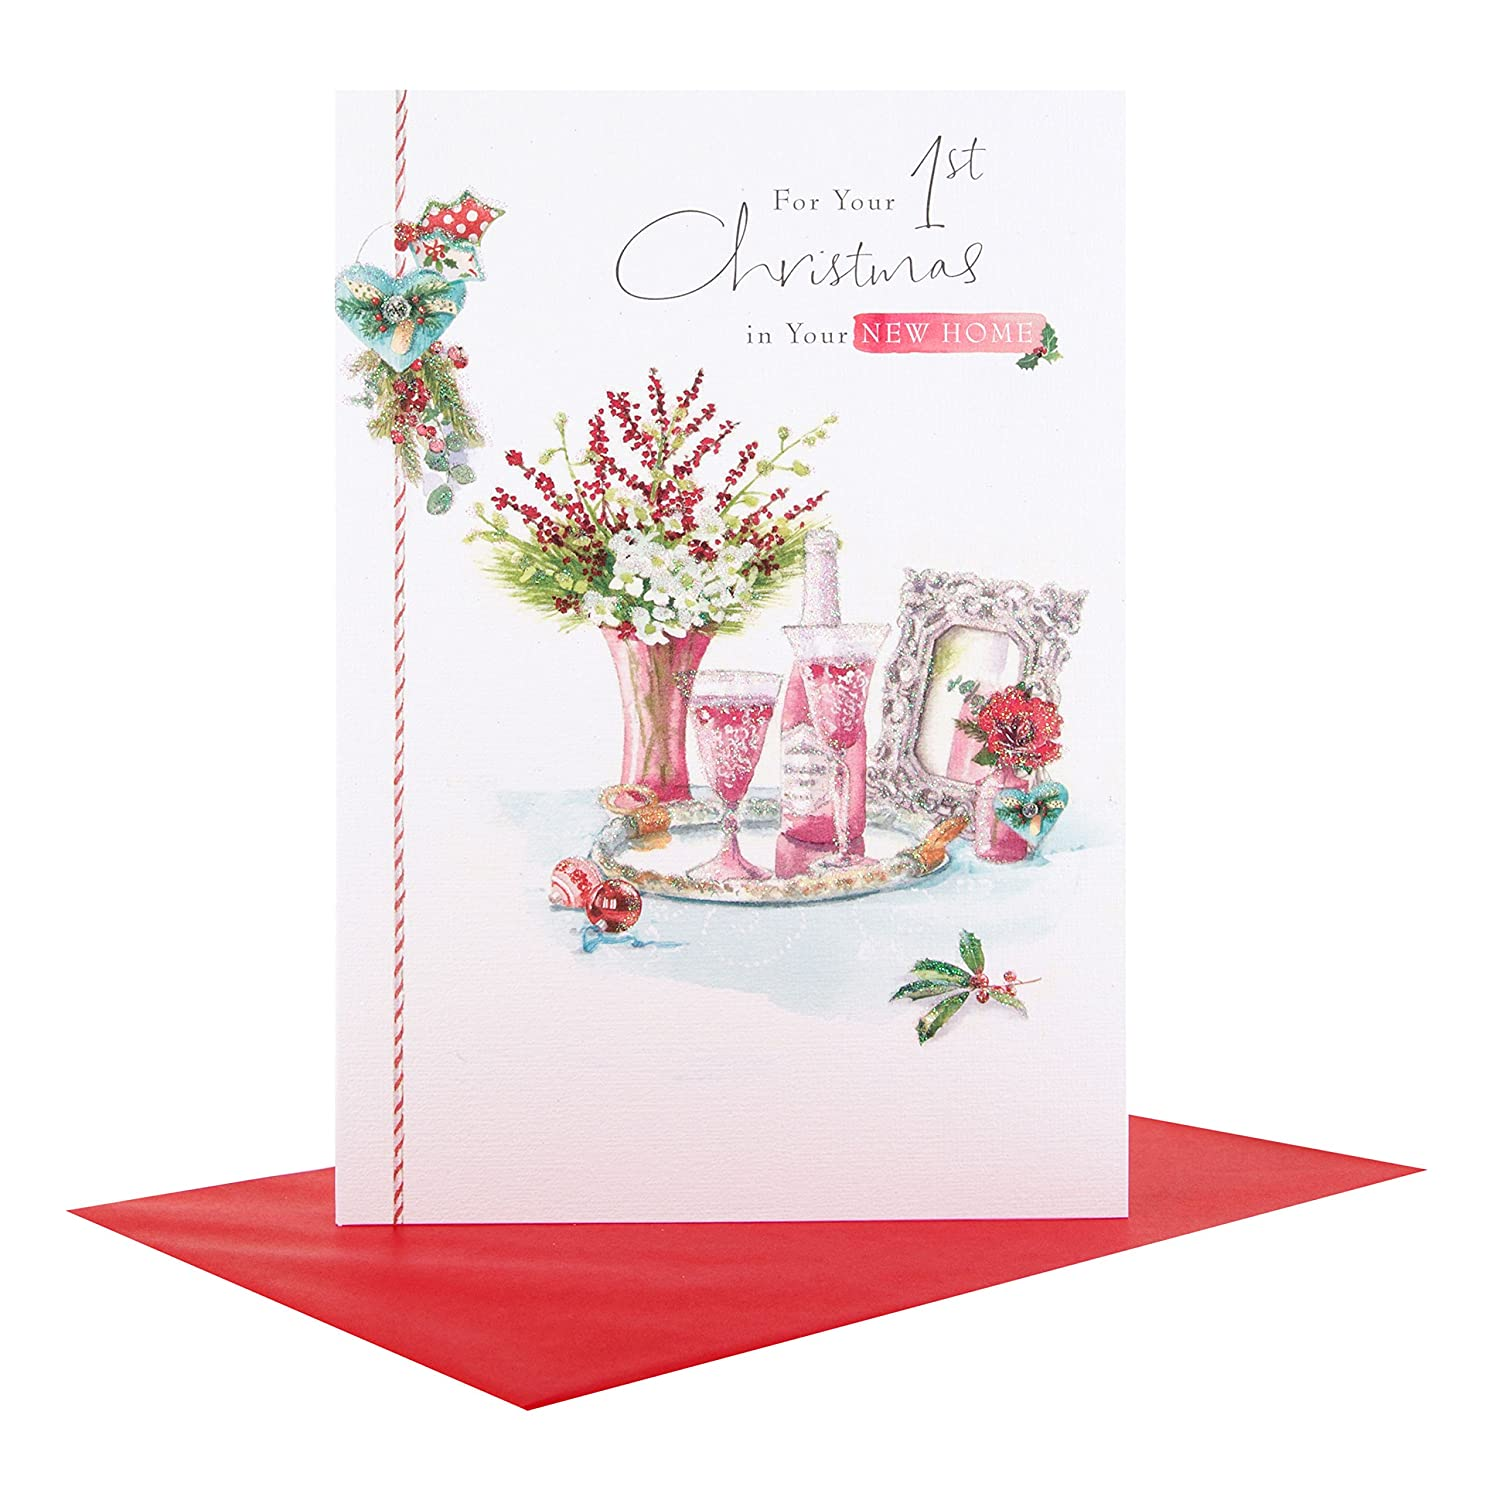 Hallmark christmas card 1st in your new home medium amazon hallmark christmas card 1st in your new home medium amazon office products m4hsunfo